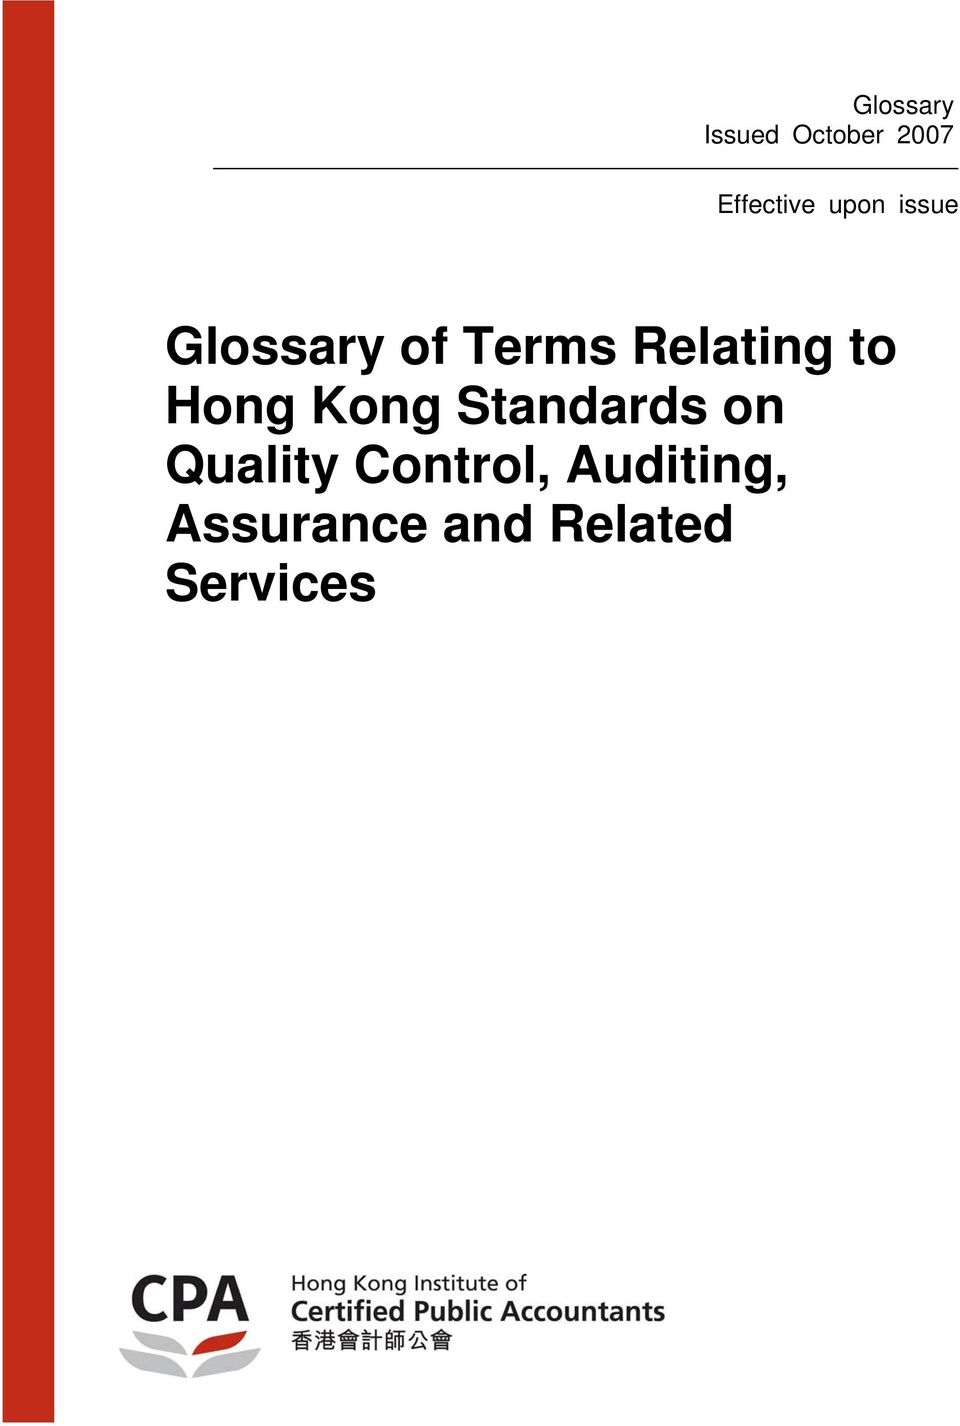 to Hong Kong Standards on Quality